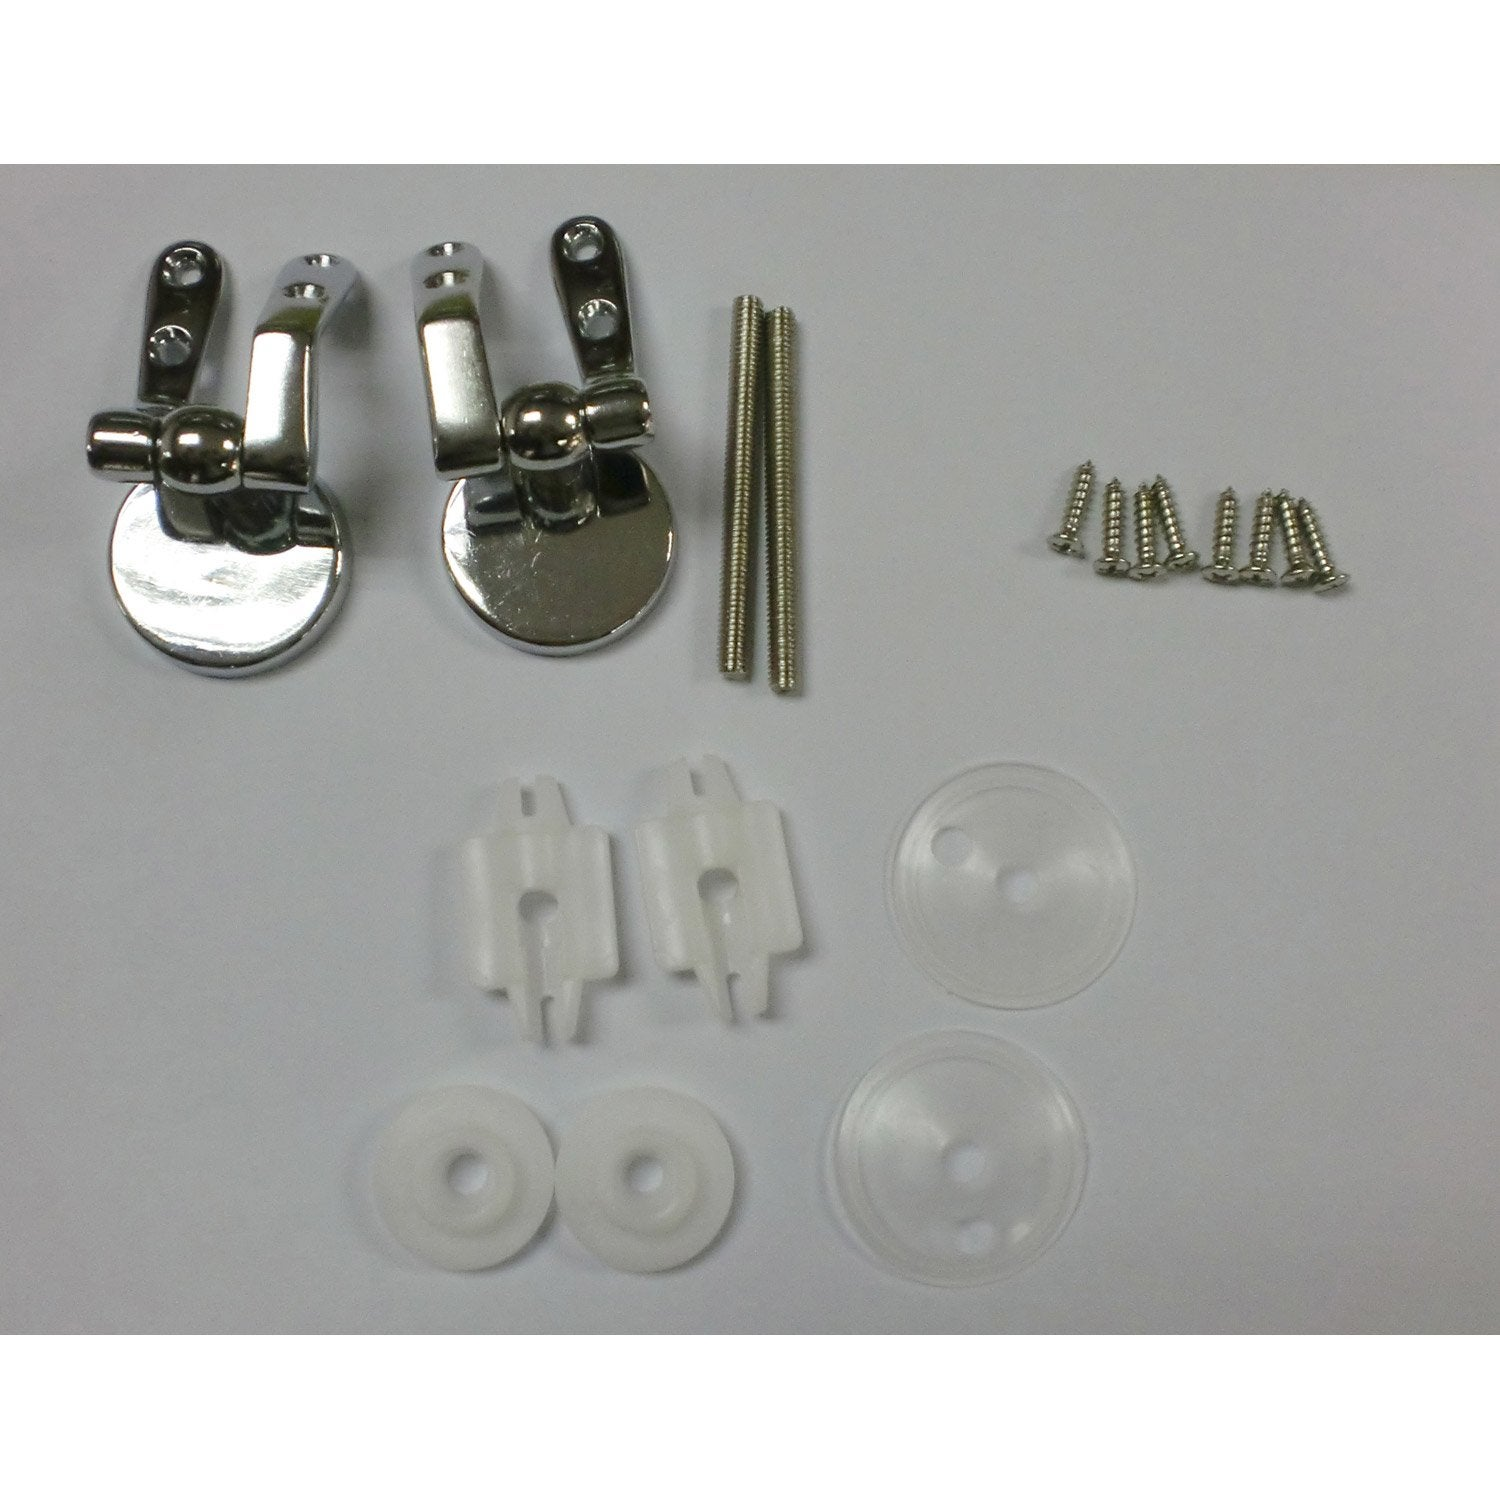 Kit de fixation leroy merlin - Kit reparacion baneras leroy merlin ...